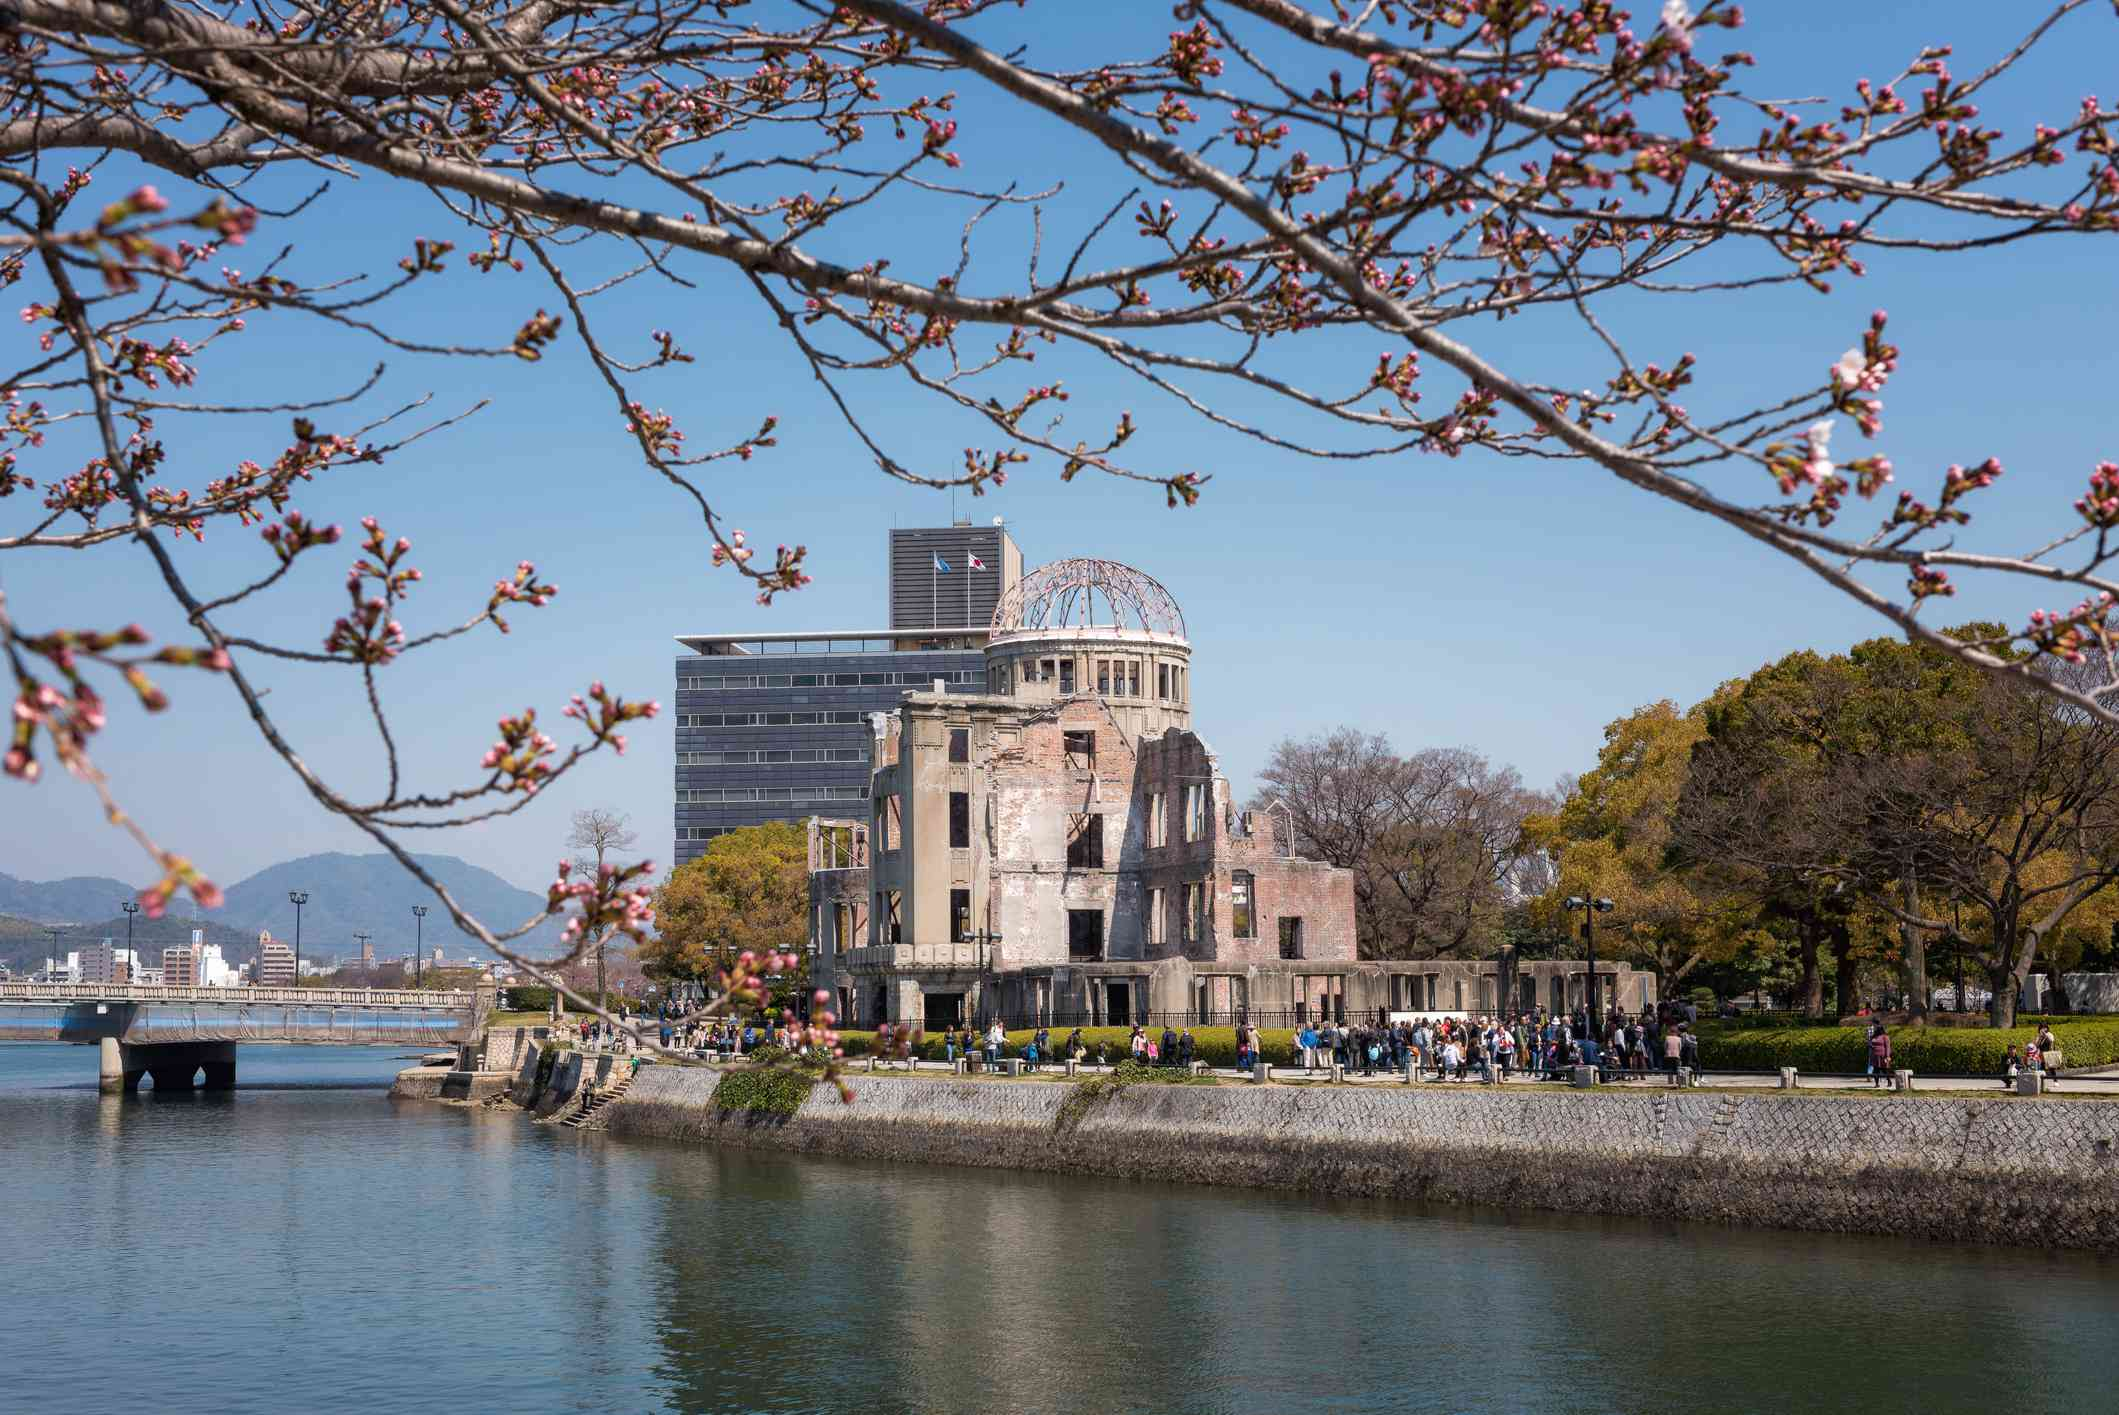 The Hiroshima Peace Memorial, commonly called the Atomic Bomb Dome or A-Bomb Dome is part of the Hiroshima Peace Memorial Park in Hiroshima, Japan